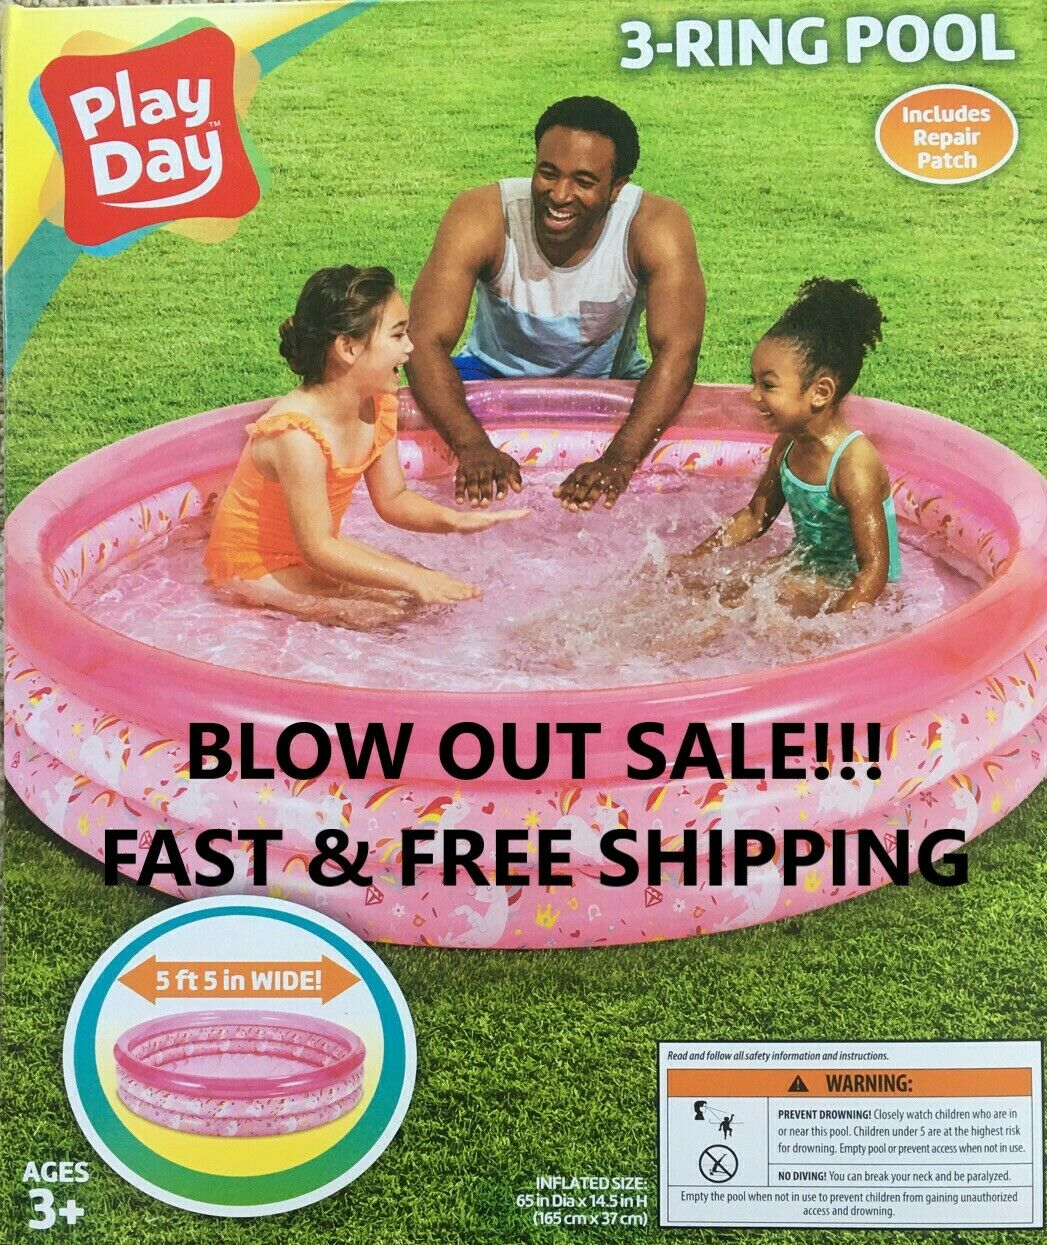 PoolInflatable PLAYDAY 3 Ring 5 ft Round Pink,Summer Swimming Kids Outdoor NEW